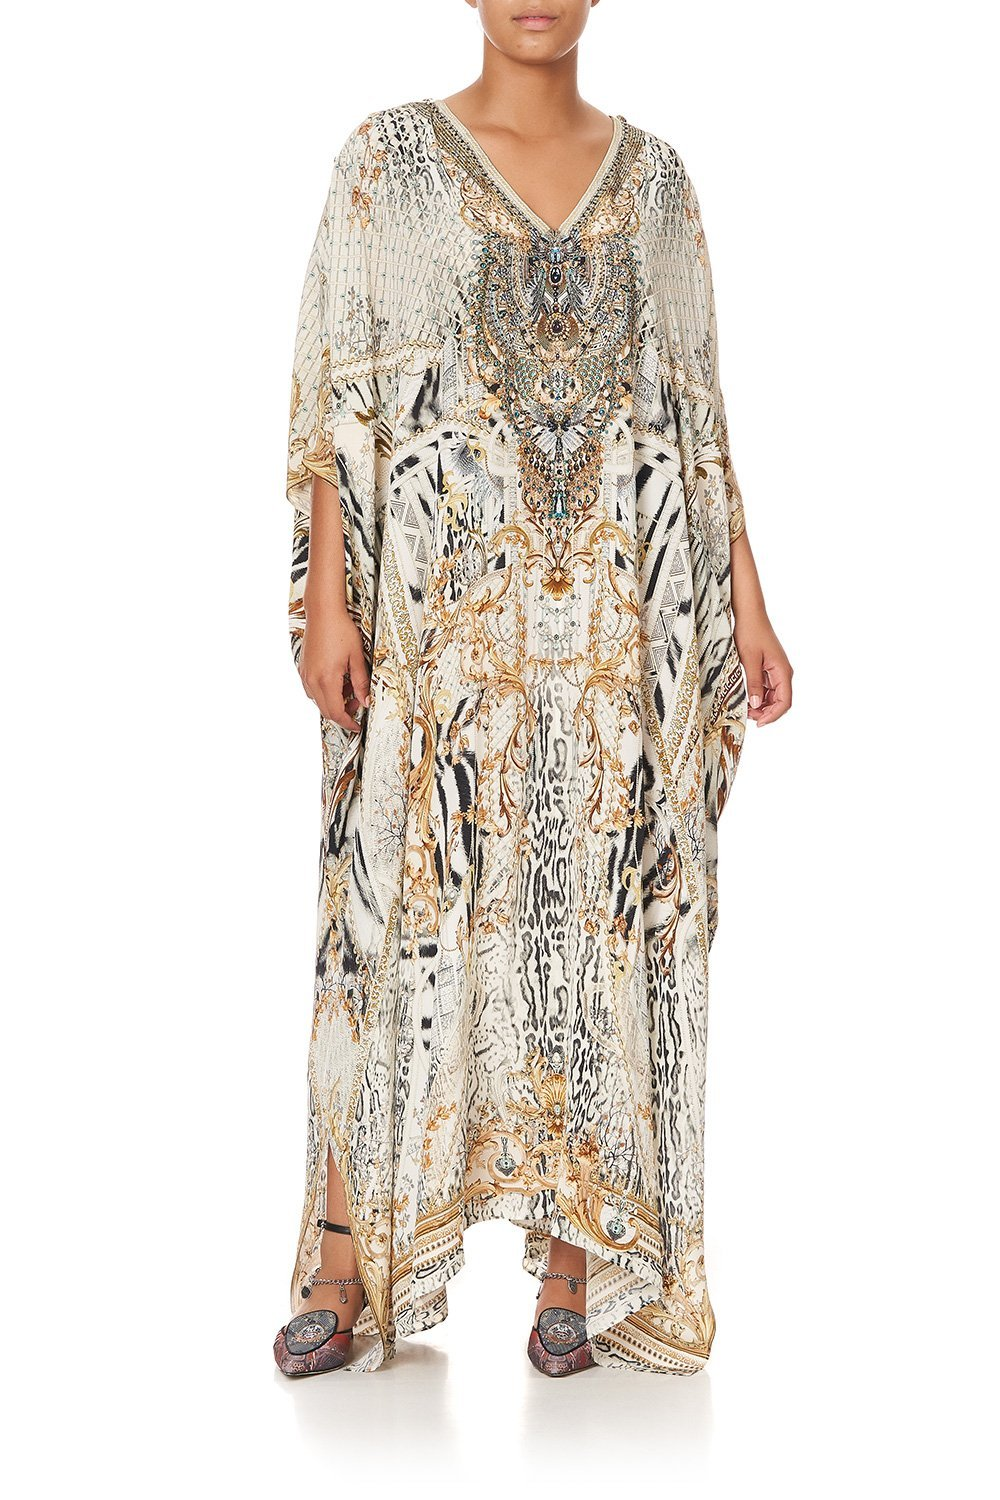 LONG KAFTAN WITH BUTTONS GATES OF GLORY